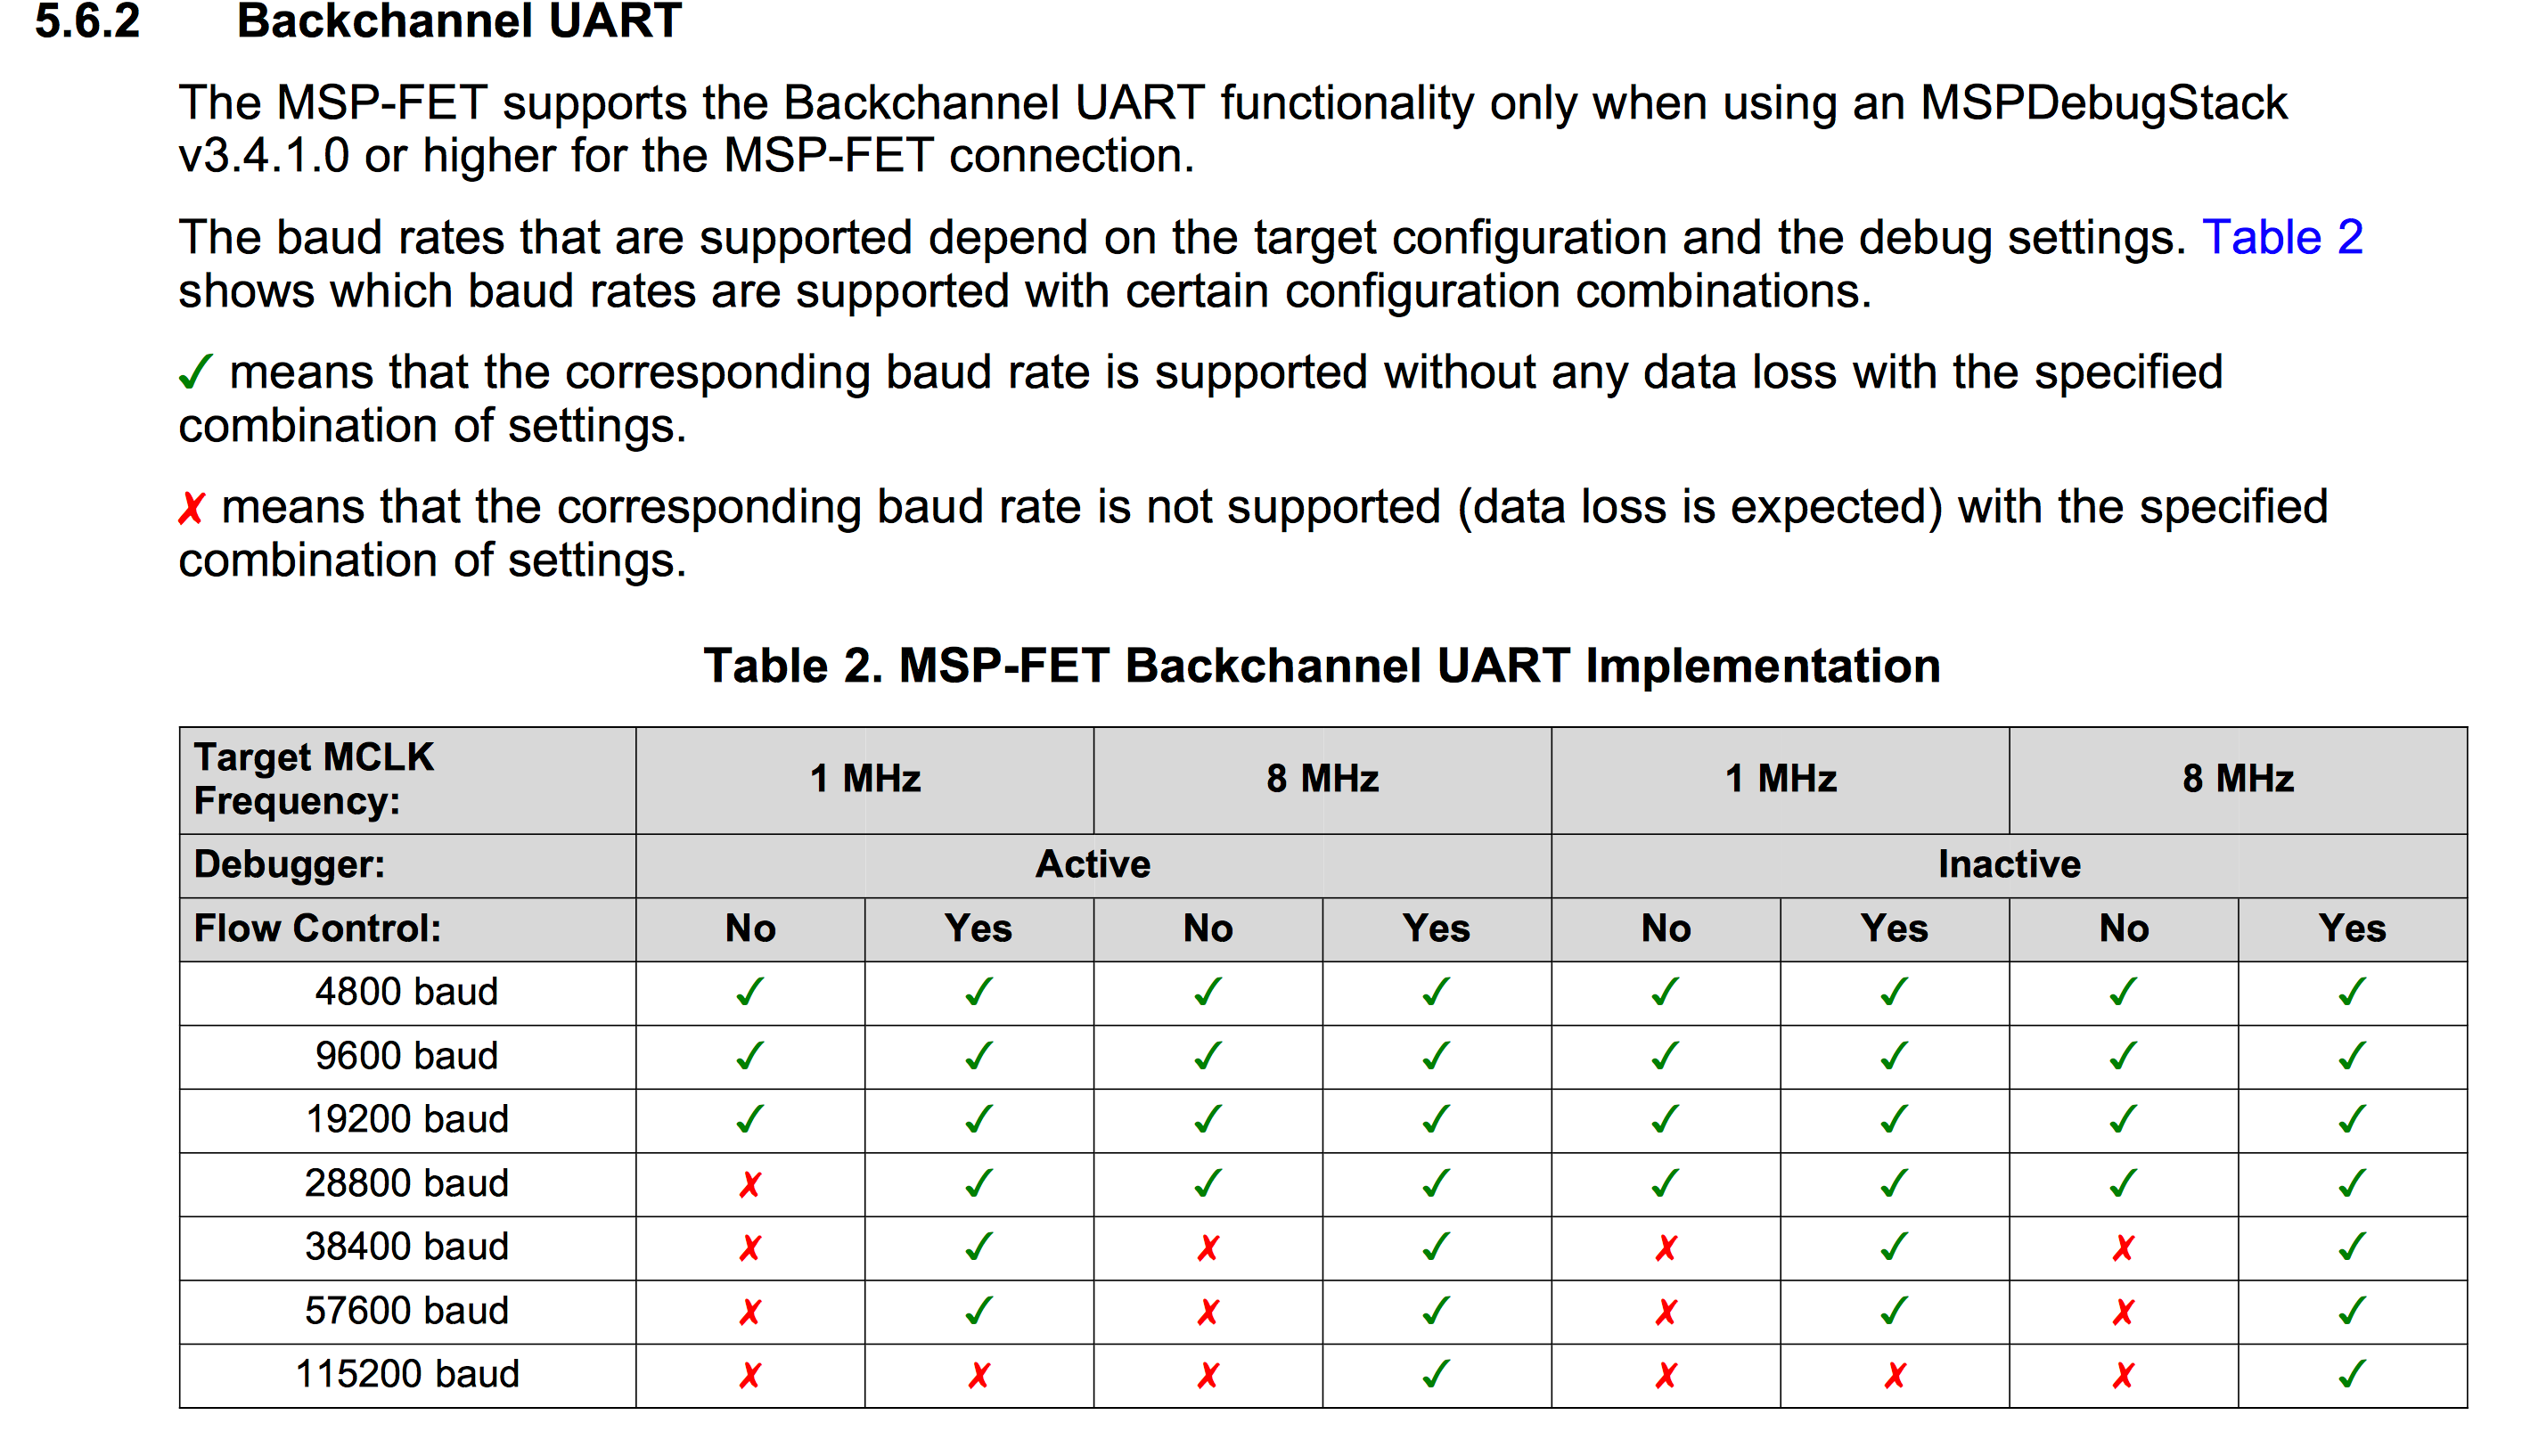 MSP430F5234: How can I access the MSP-FET\'s Backchannel UART to ...